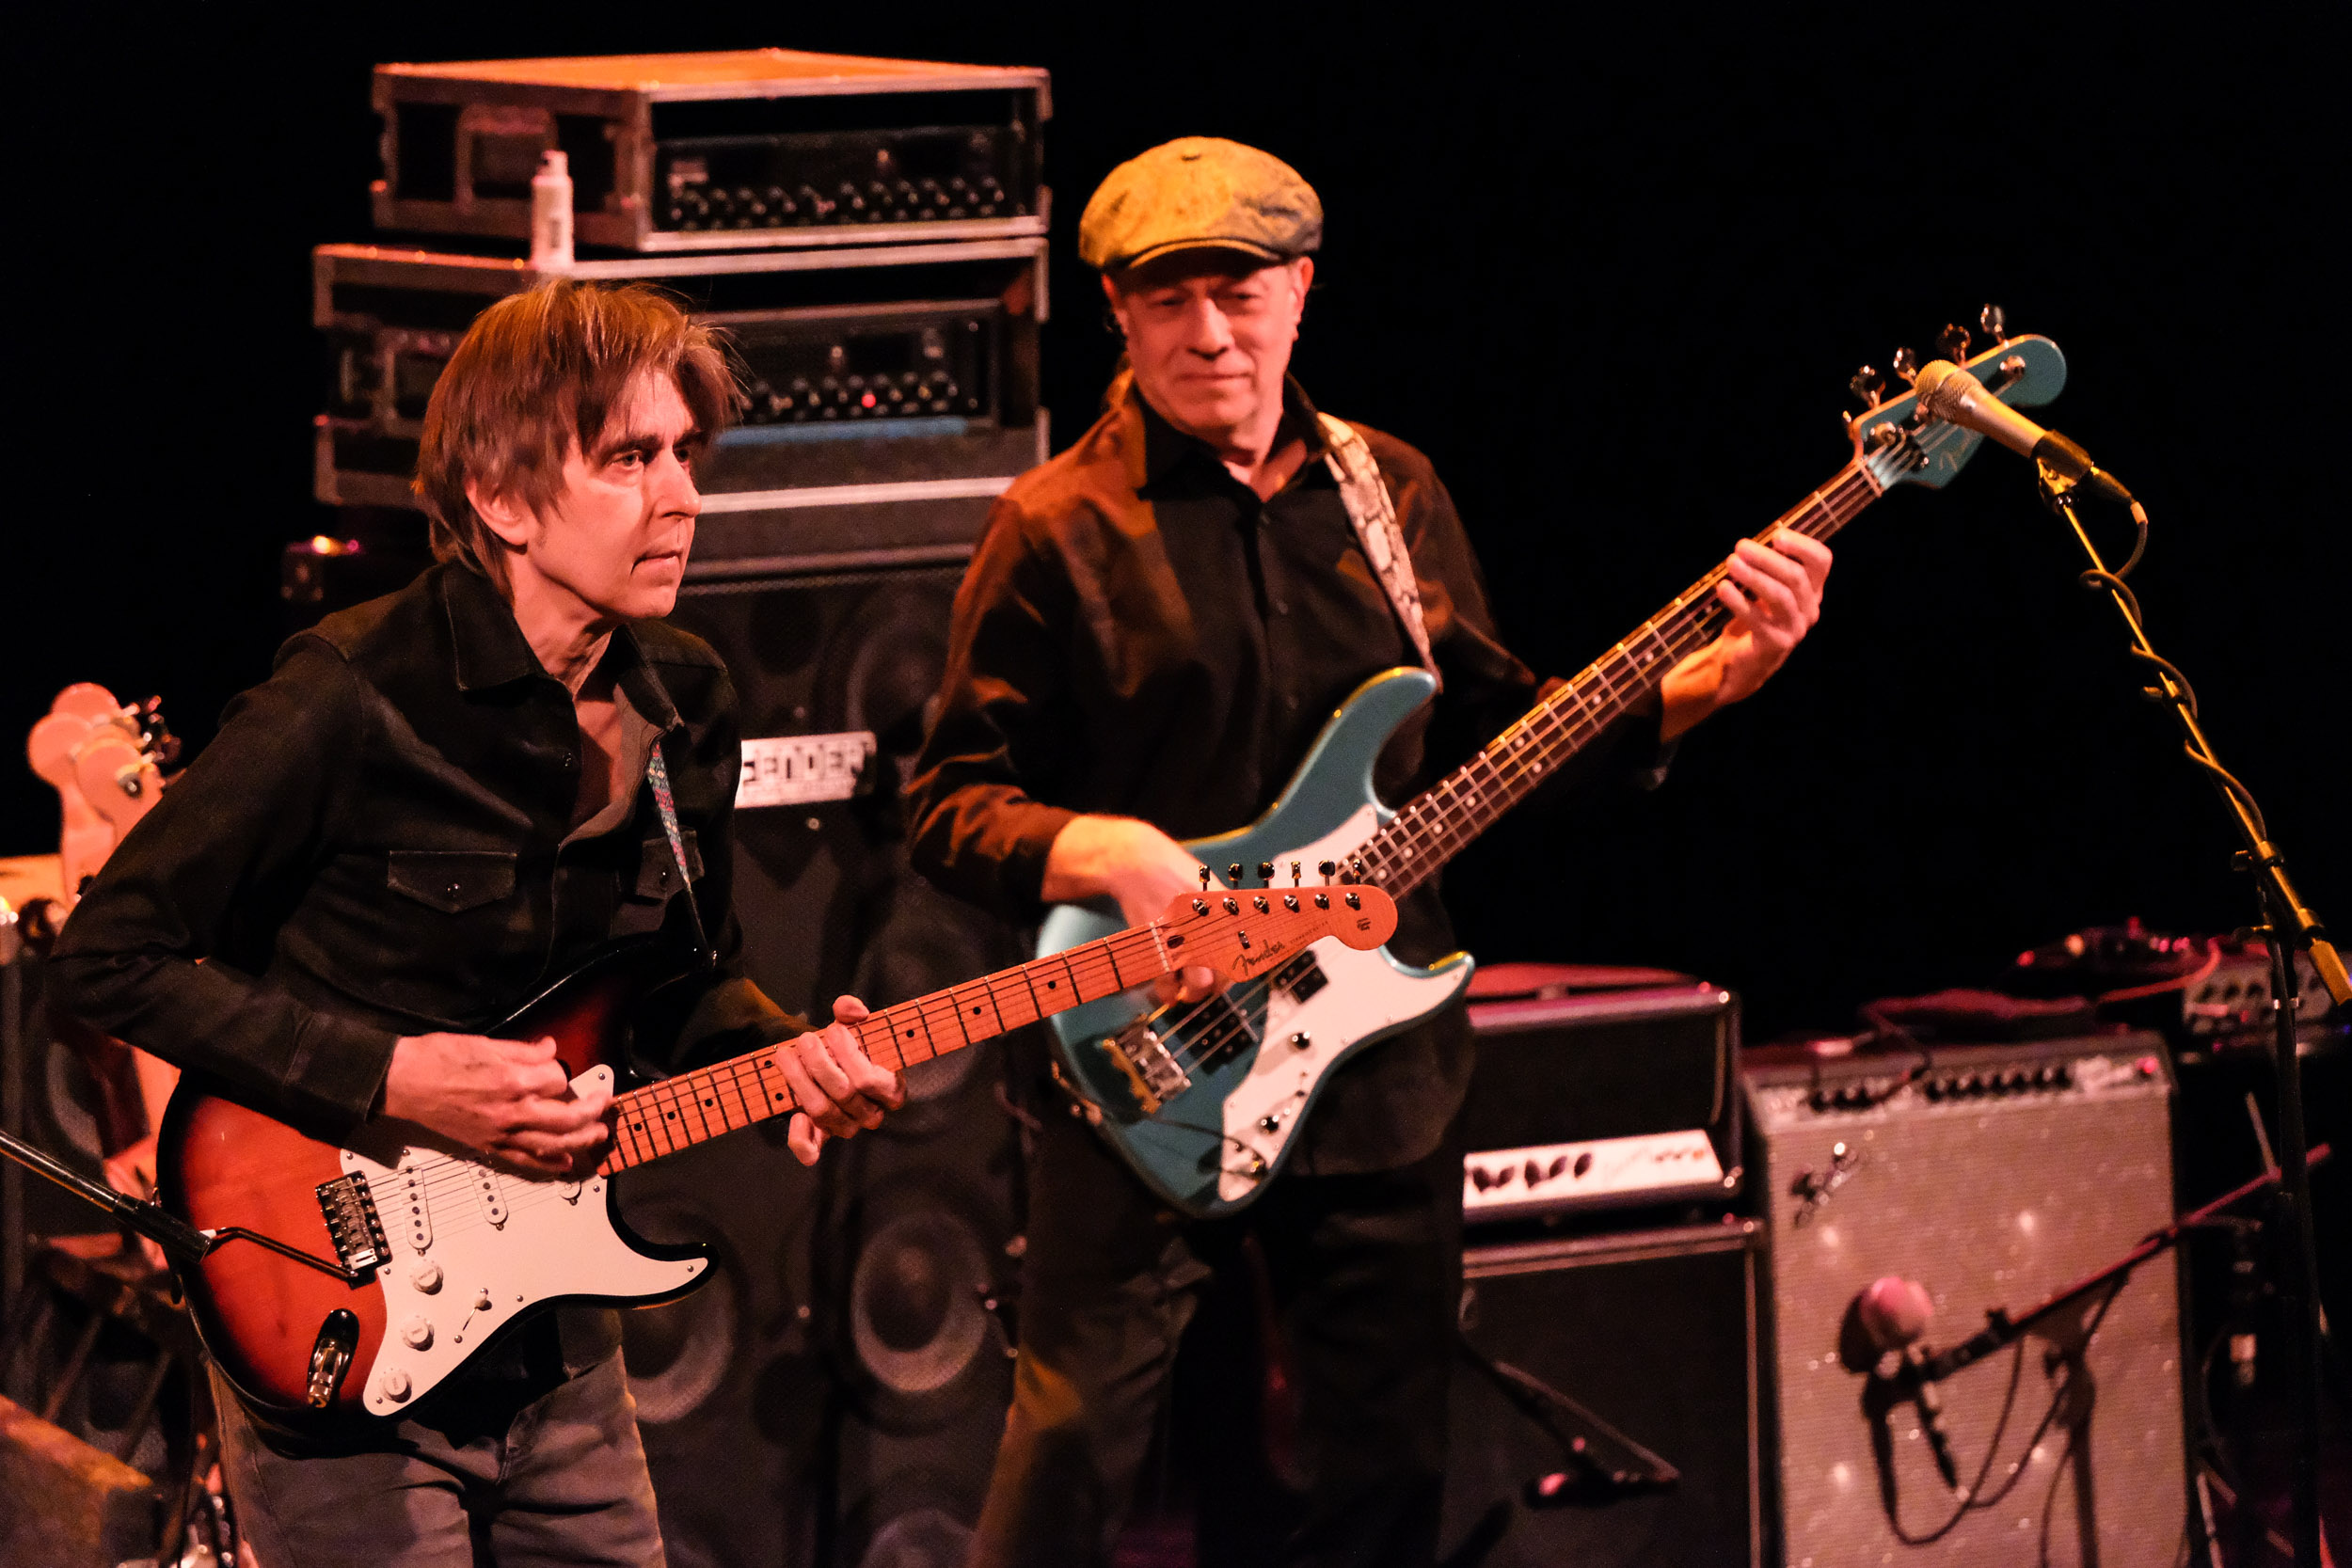 Eric Johnson (L) and Roscoe Beck (R) perform in concert on the 2020 tour Classics: Present and Past at The Aztec Theatre on January 30, 2020 in San Antonio, Texas. Photo © Manuel Nauta